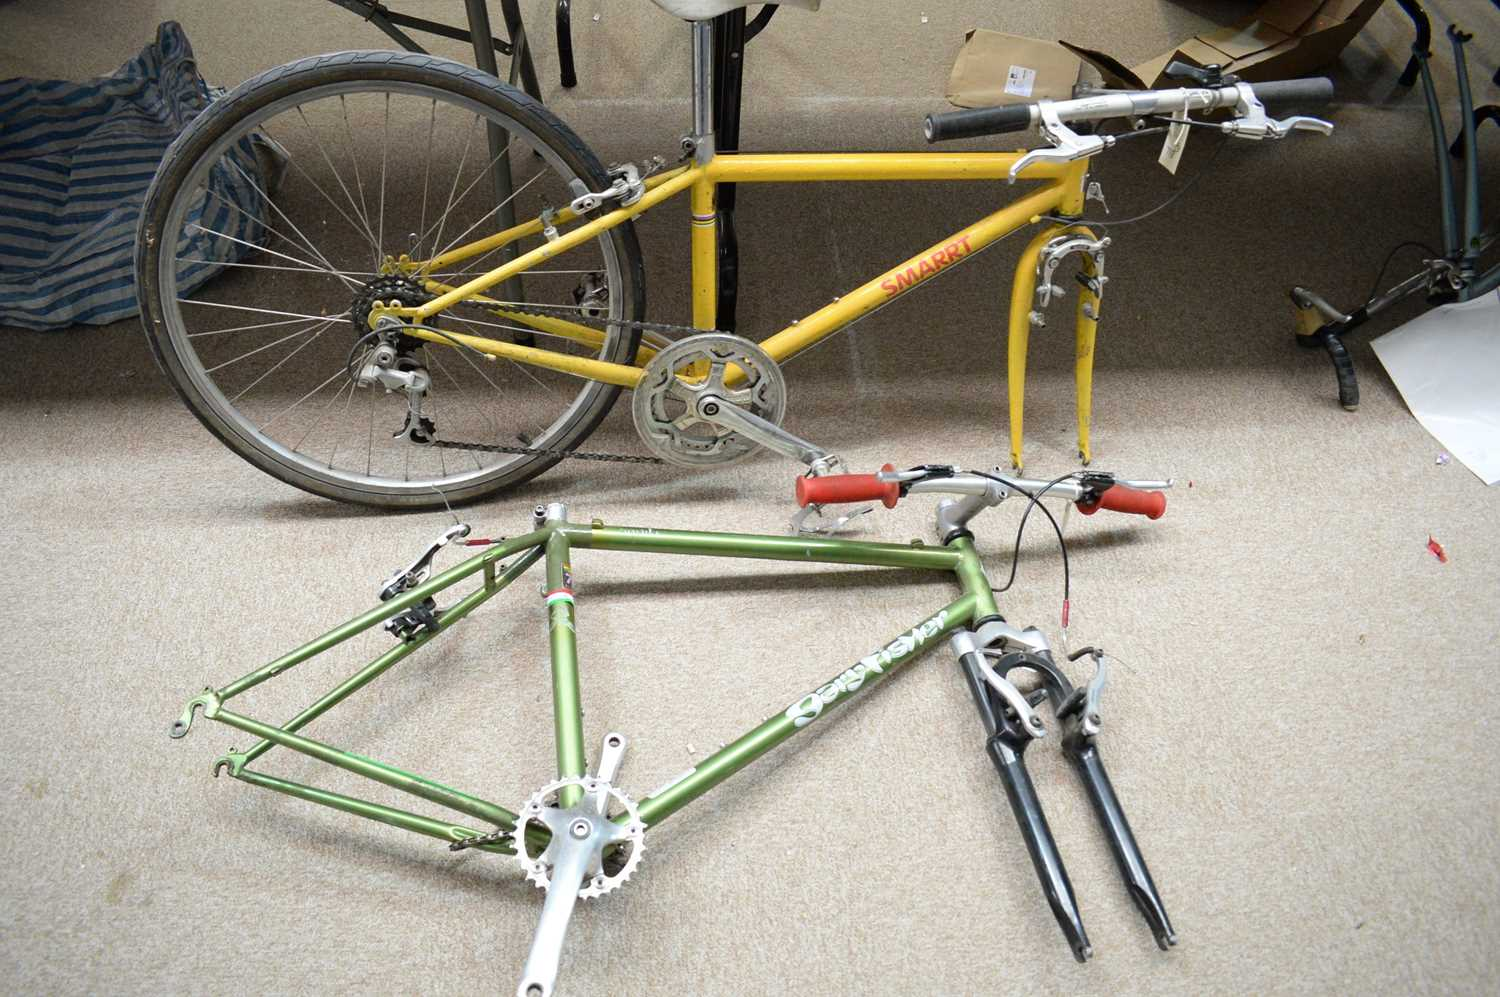 Lot 718 - A Gary Fisher Aquila mountain bike frame; and another by Smaart.